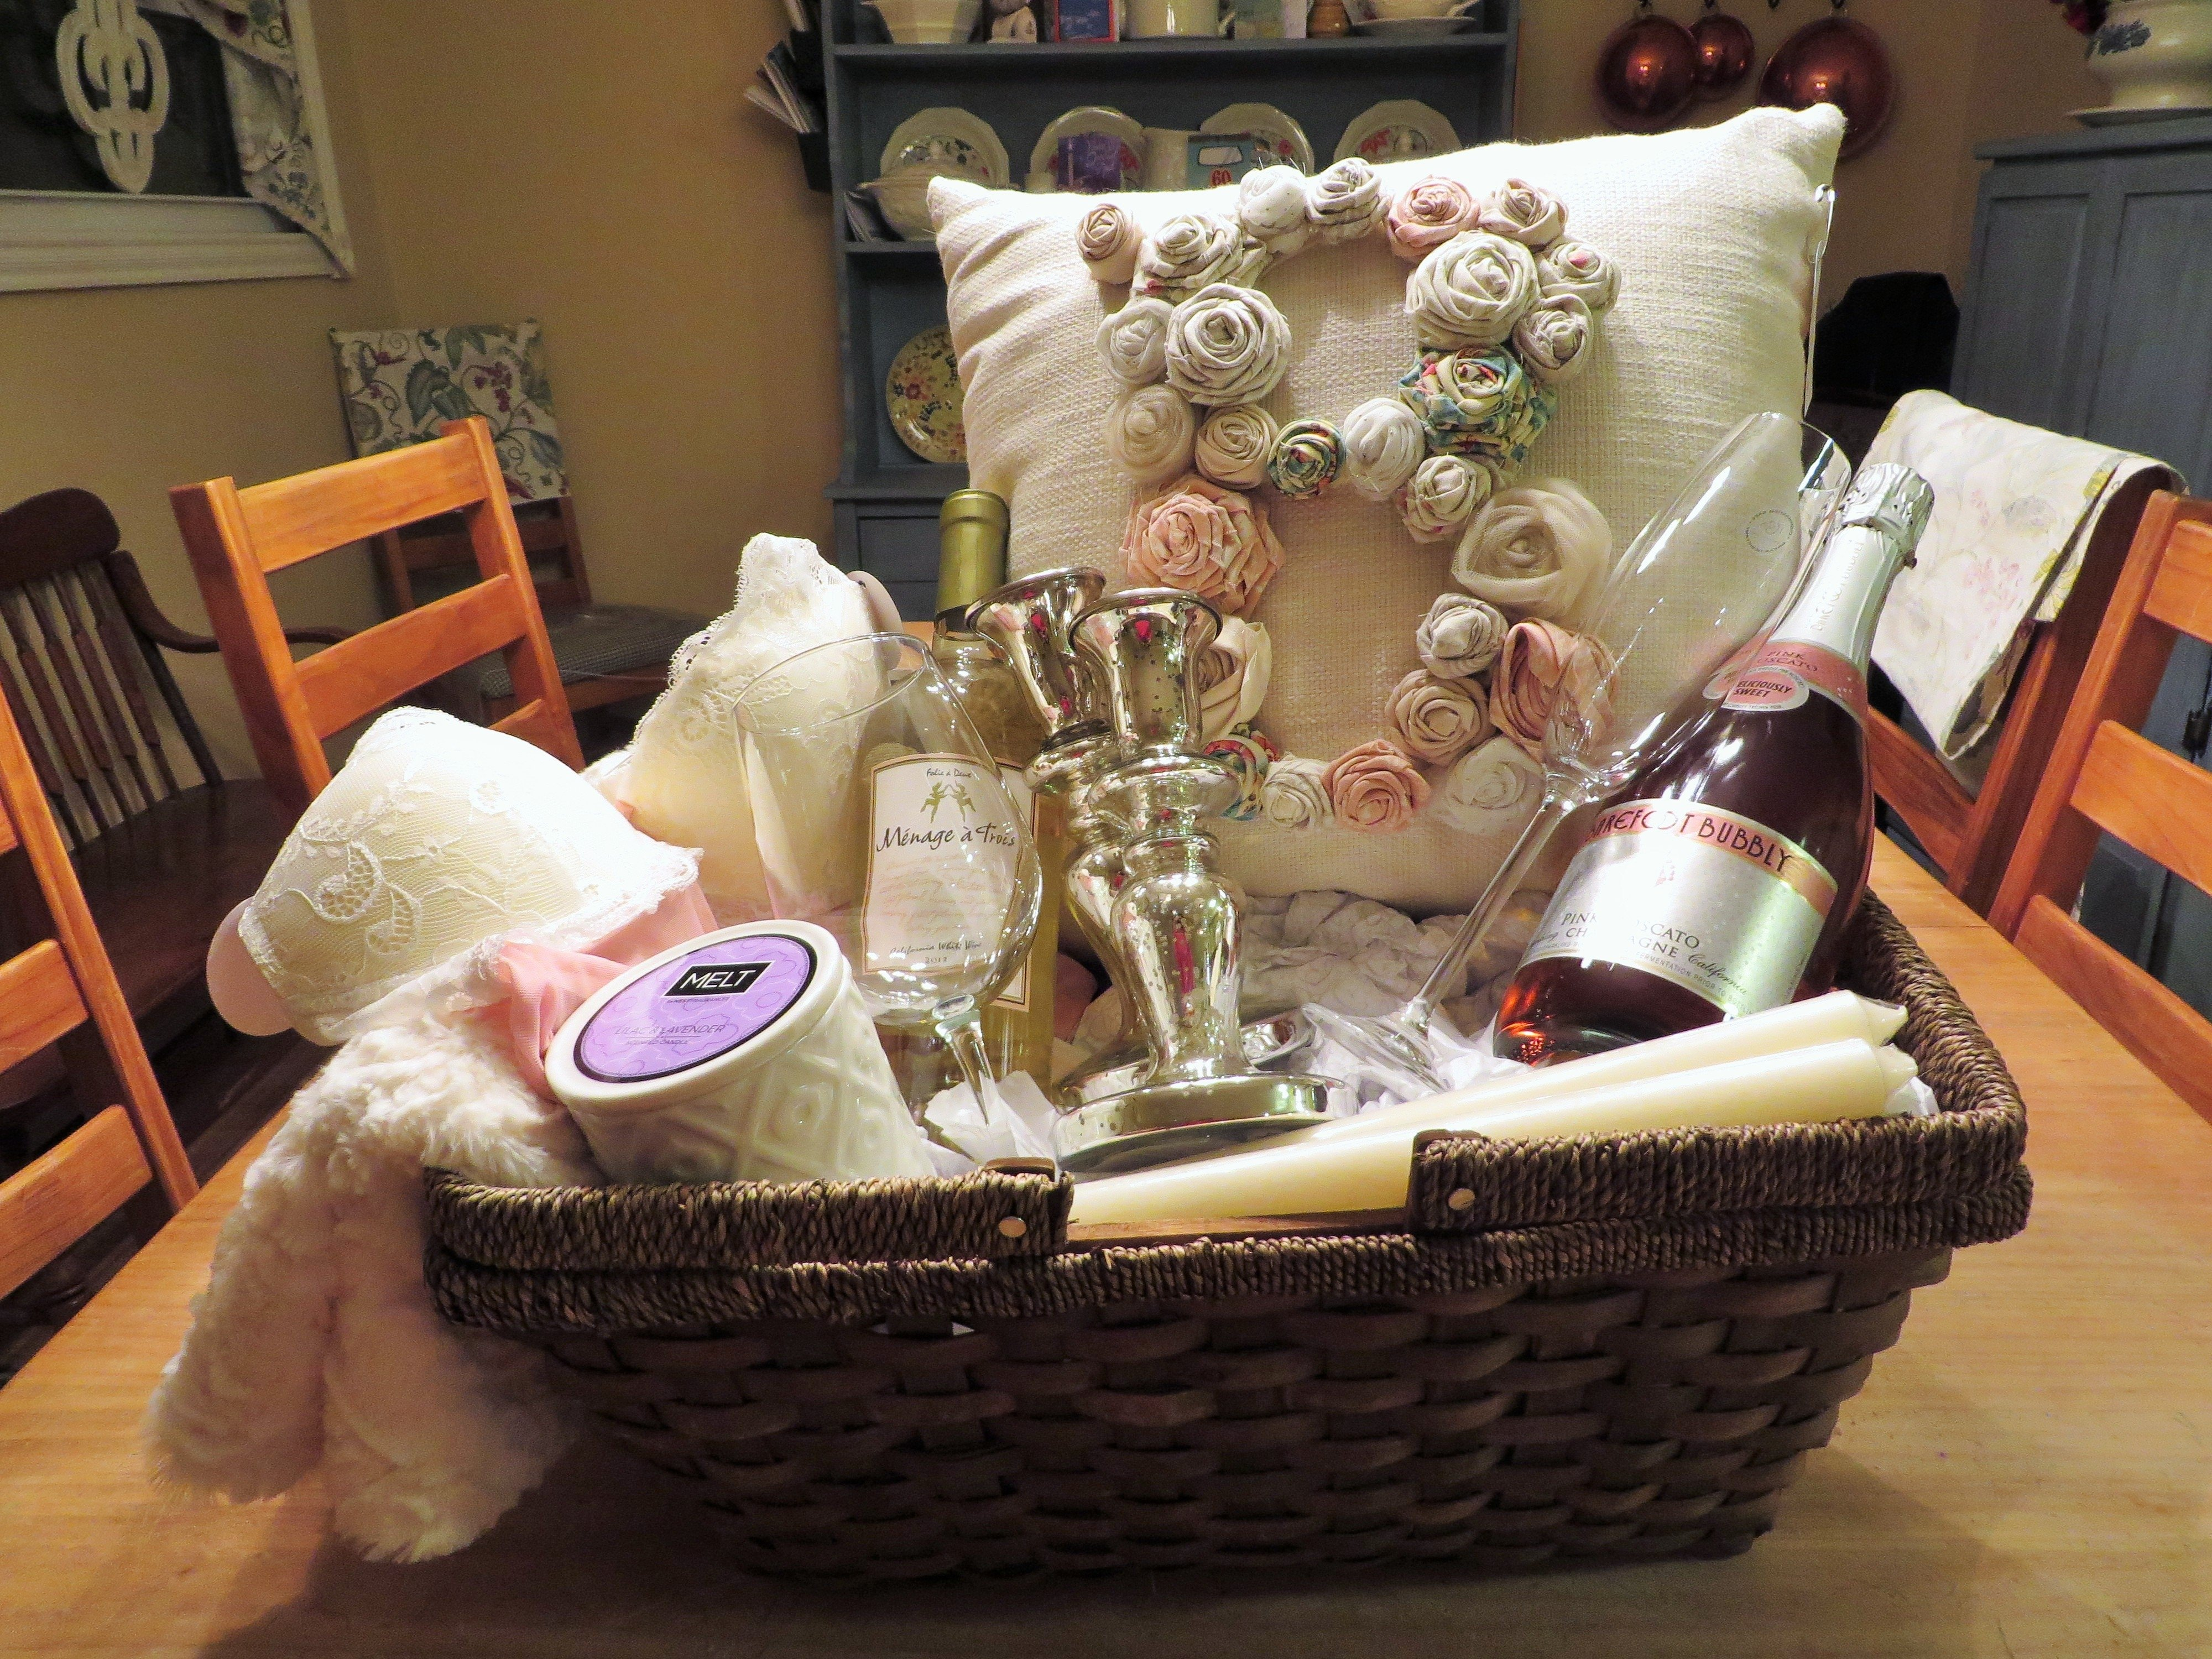 10 Most Recommended Ideas For A Bridal Shower Gift creative gift ideas for wedding shower unique bridal shower t basket 2020